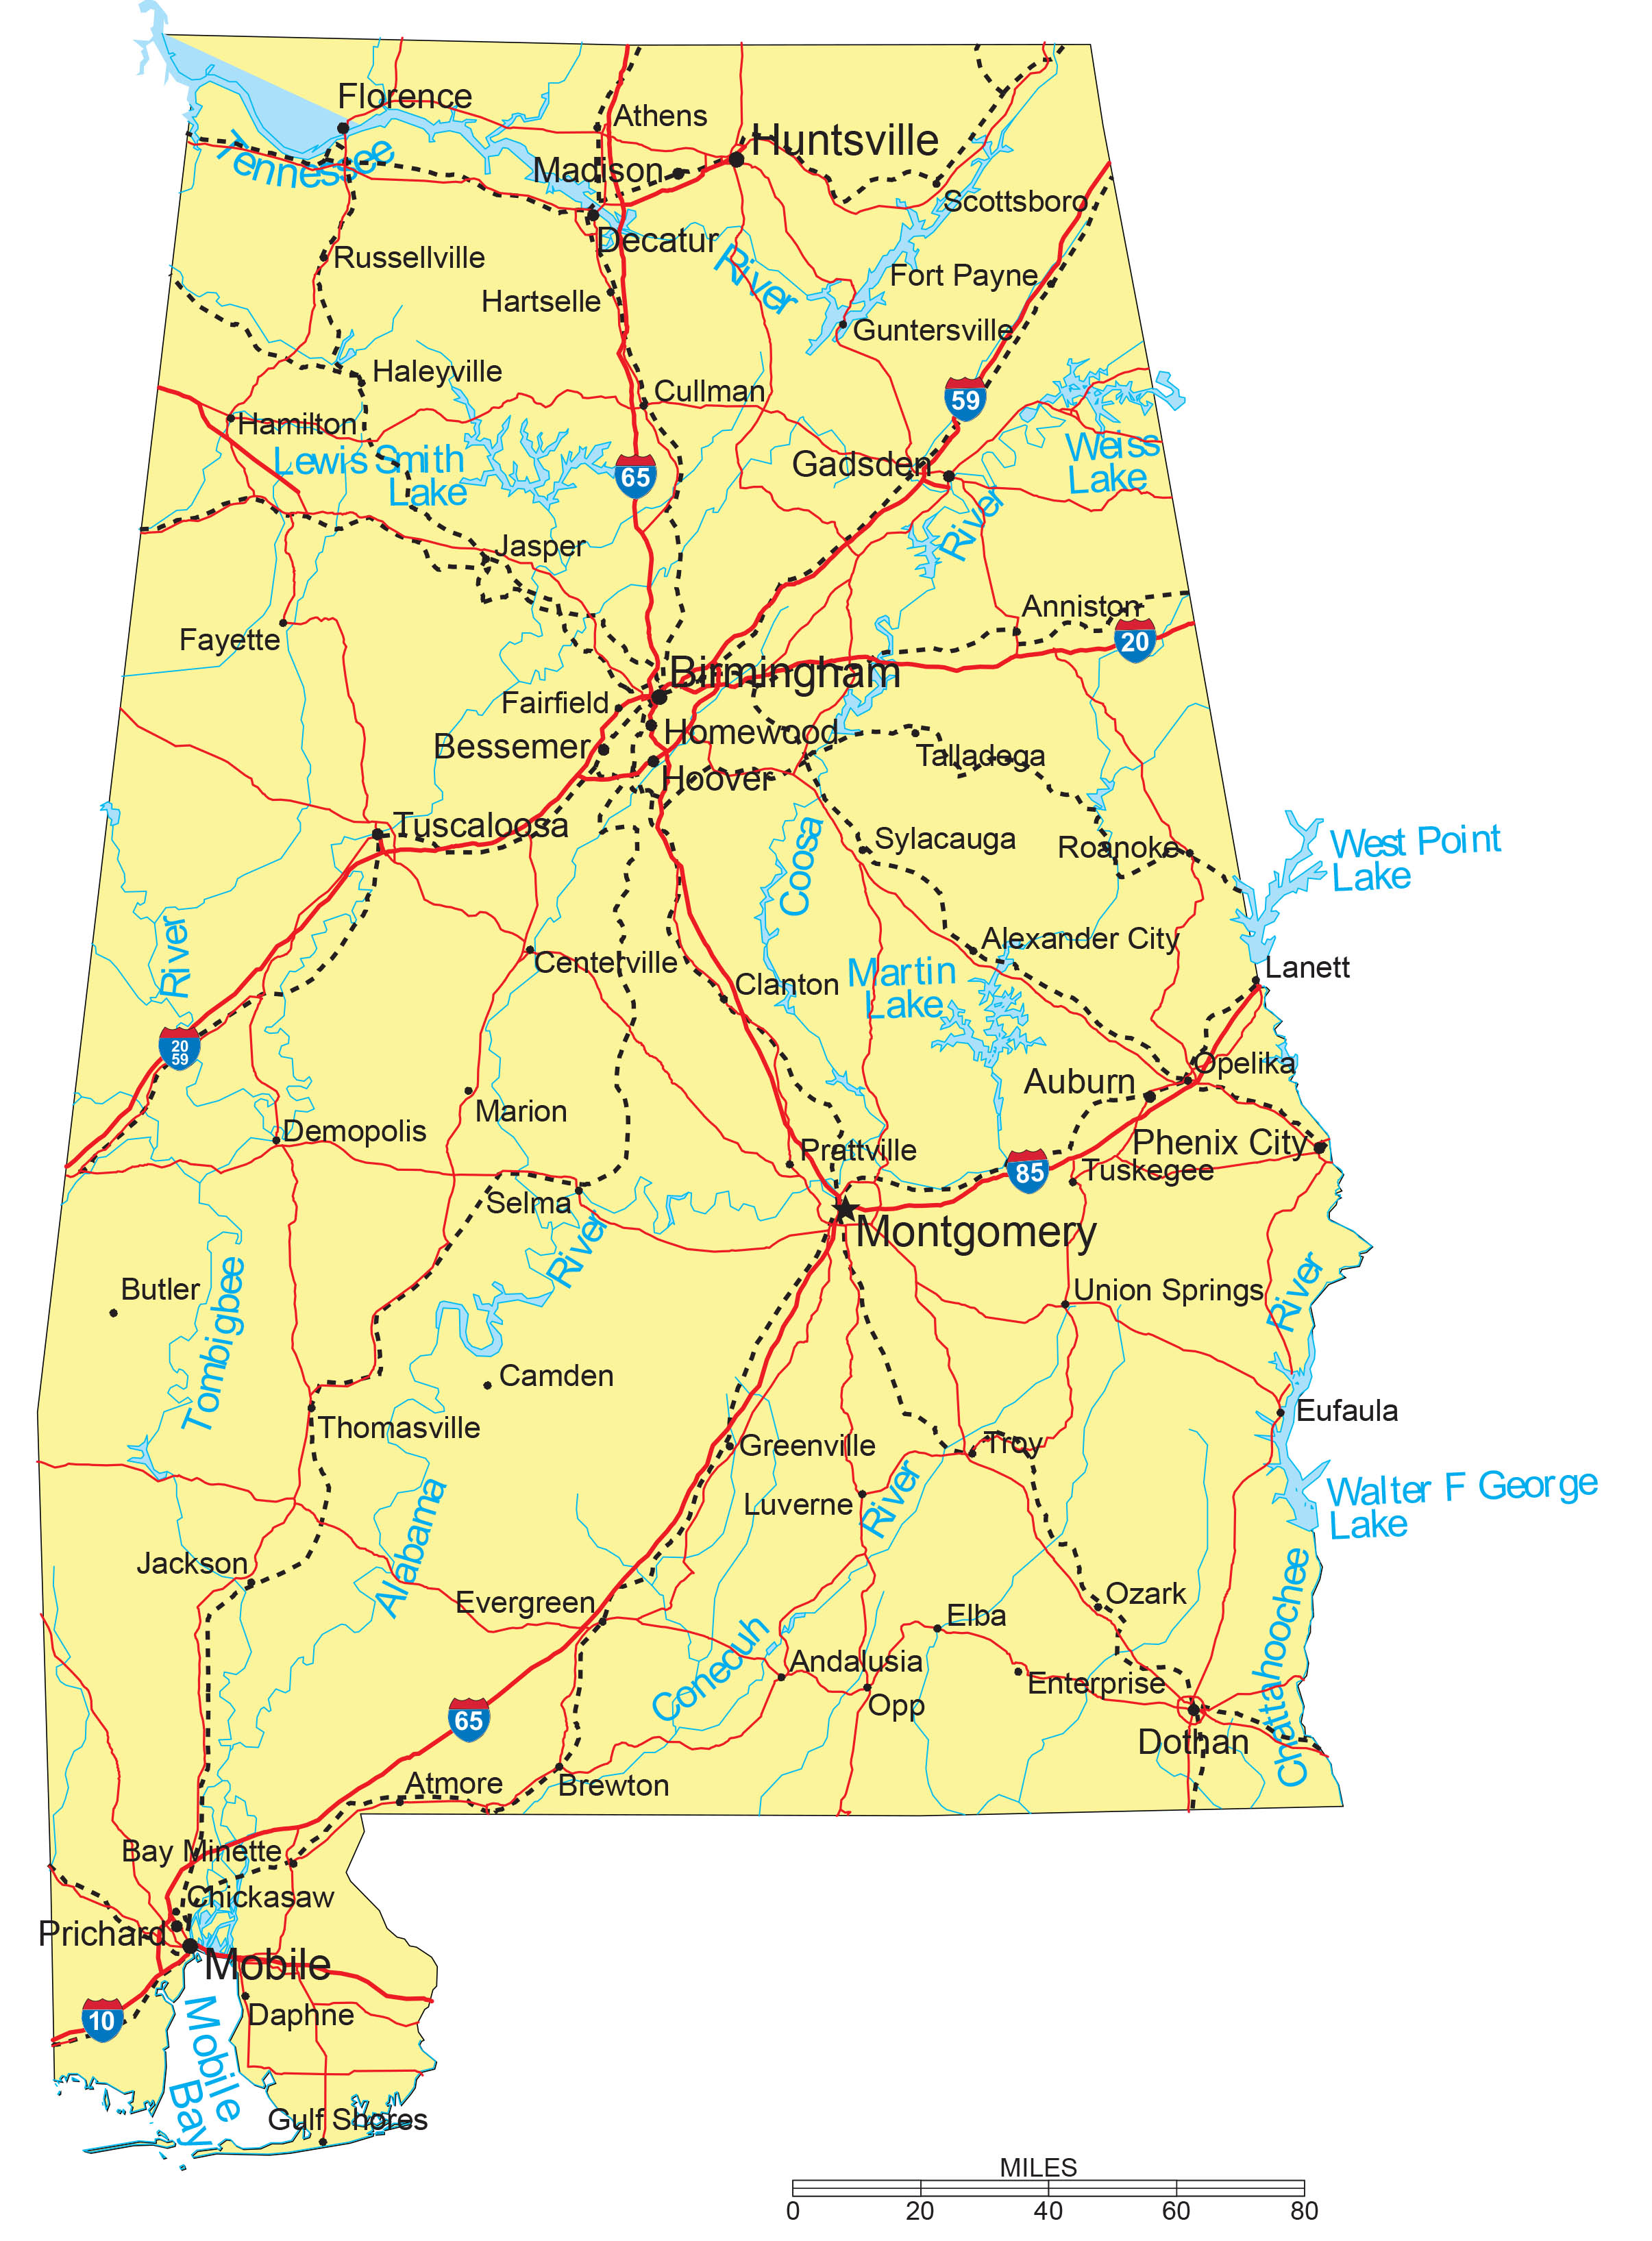 alabama-cities-roads-waterways Map Of Usa With Cities And Interstates on us road map with cities, interstate map of usa states, interstate map united states of america, us interstate map with cities,